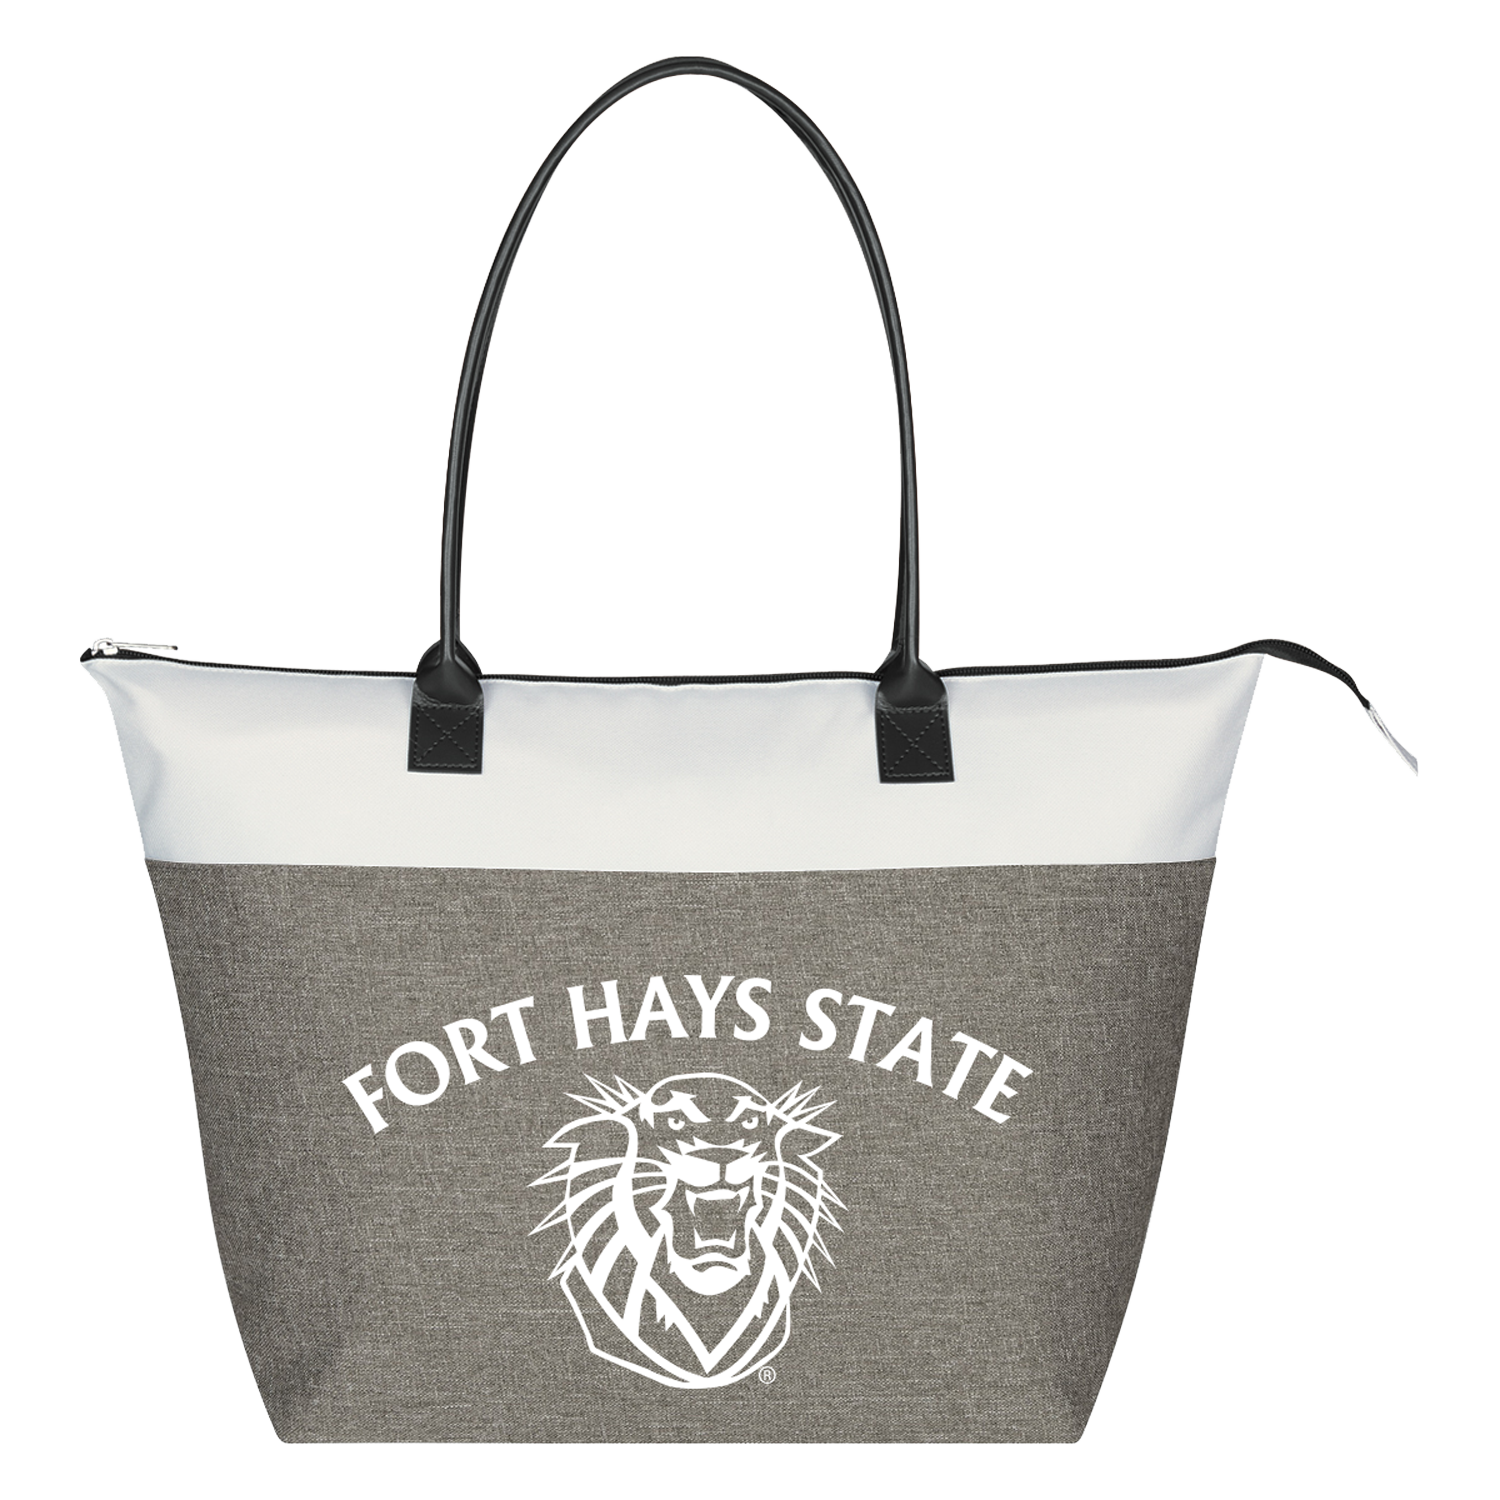 Image for the Fort Hays State Regatta Tote Bag, Gray, Jardine Associates product